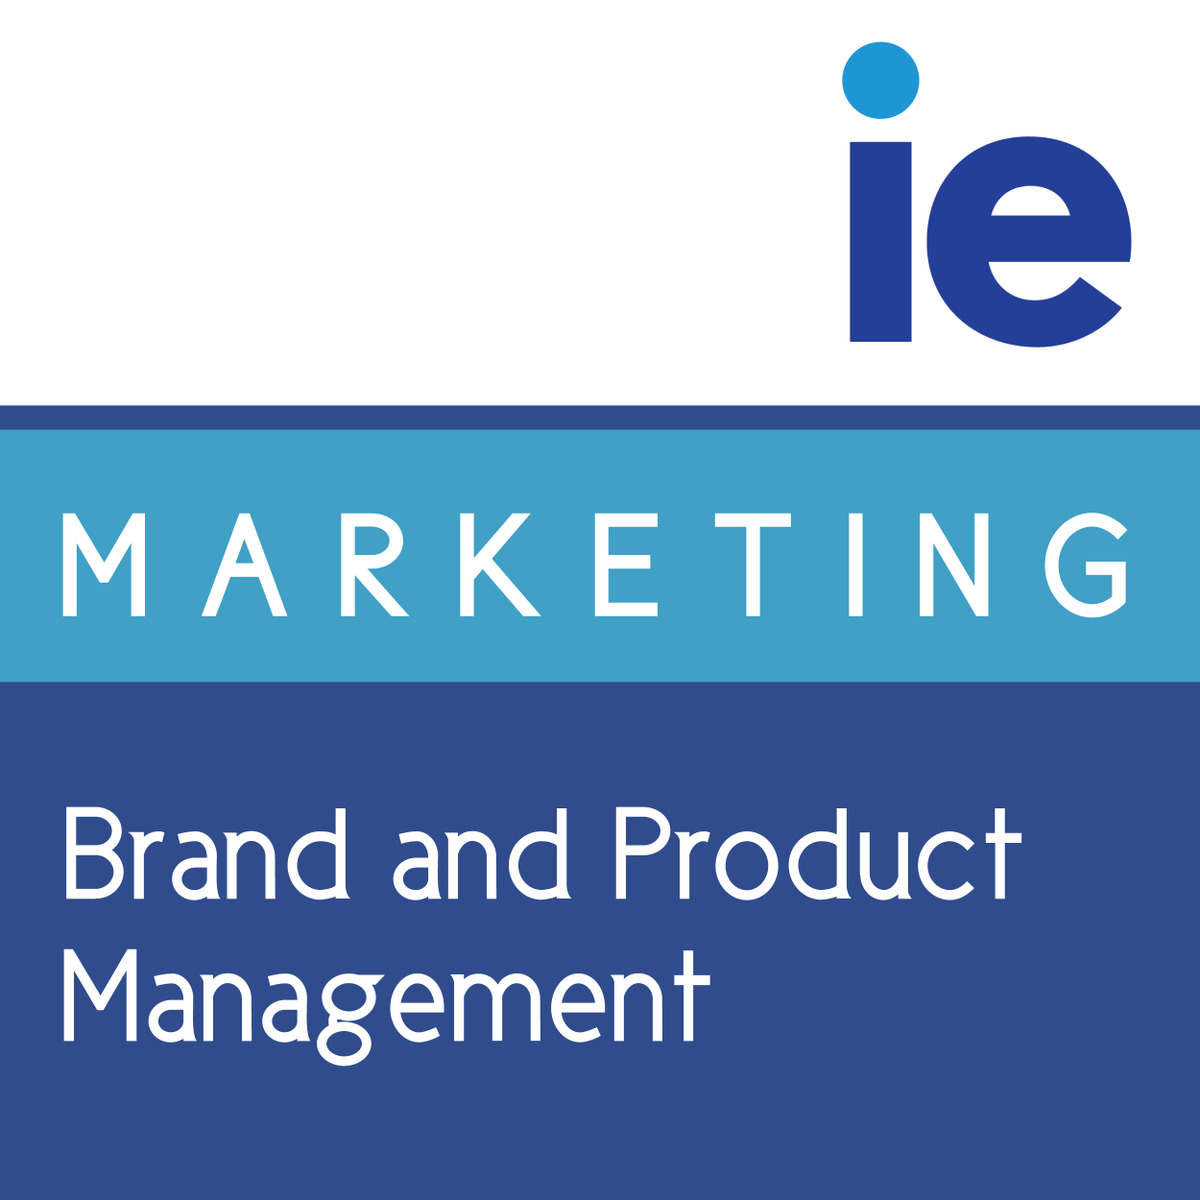 Free Online Course Brand And Product Management From Coursera